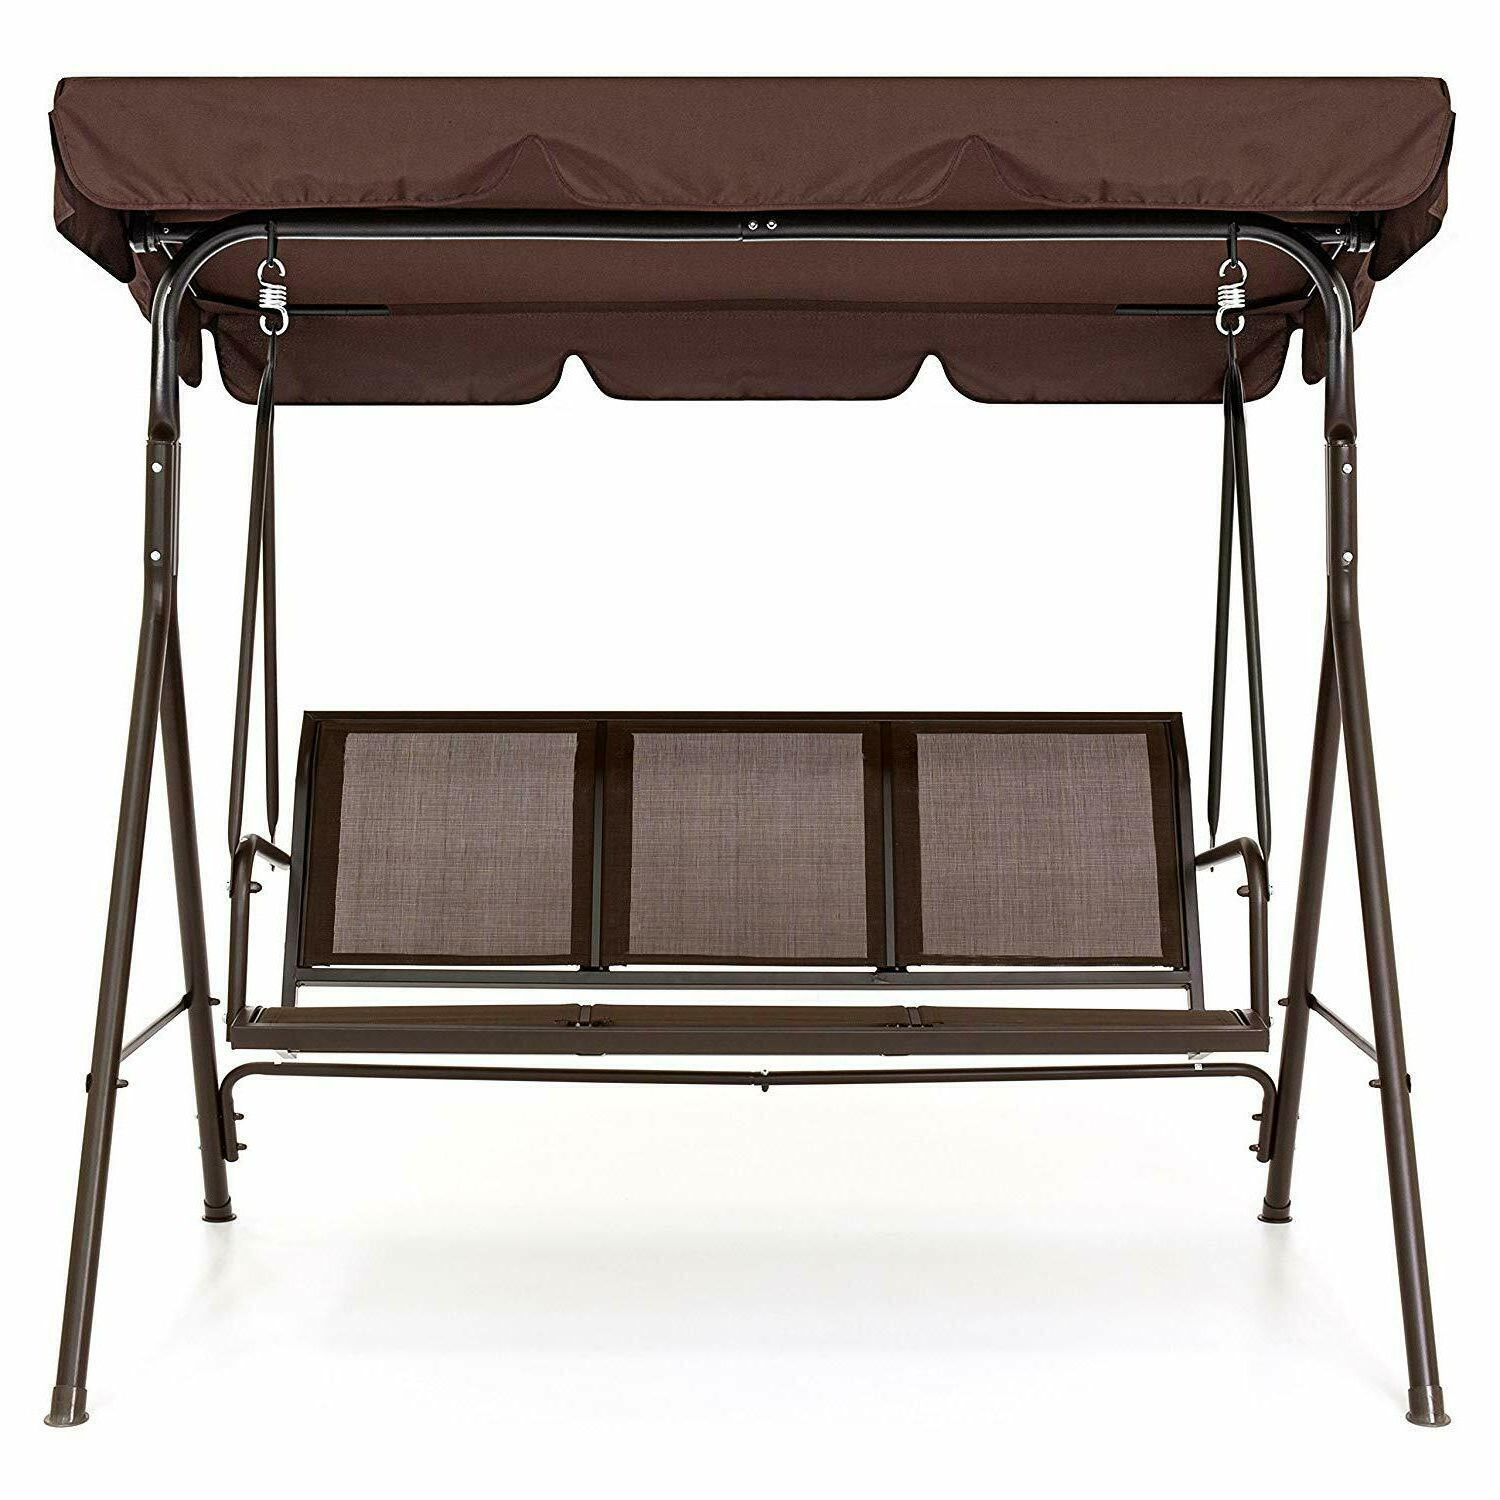 Well Known Canopy Porch Swings Throughout Best Choice Products 2 Person Outdoor Convertible Canopy Porch Swing – Brown (View 24 of 25)